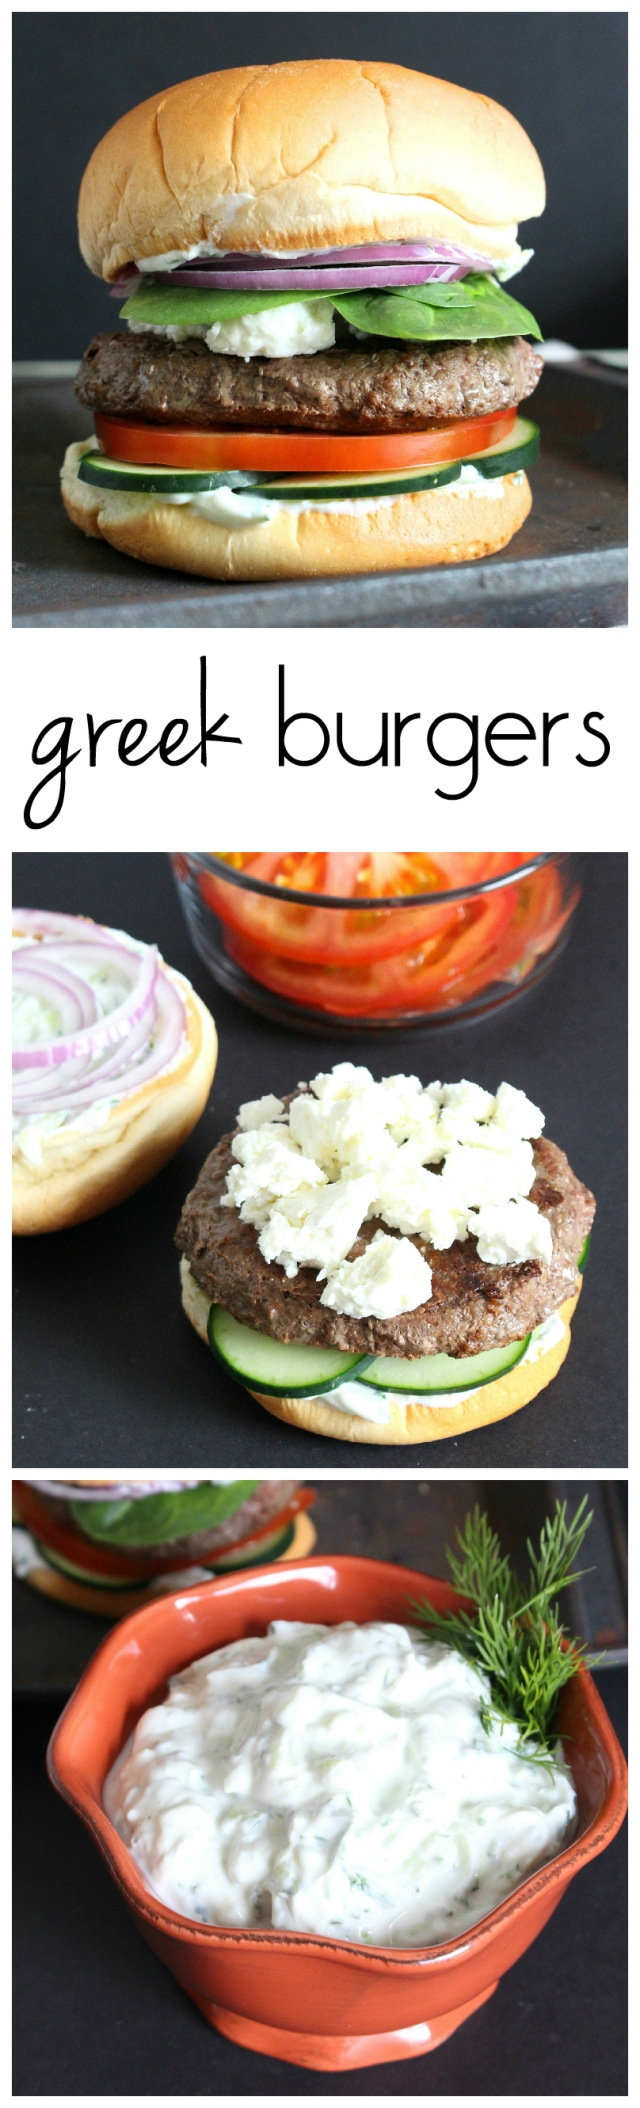 Greek Burgers with Cucumber Sauce from The Ruby Kitchen